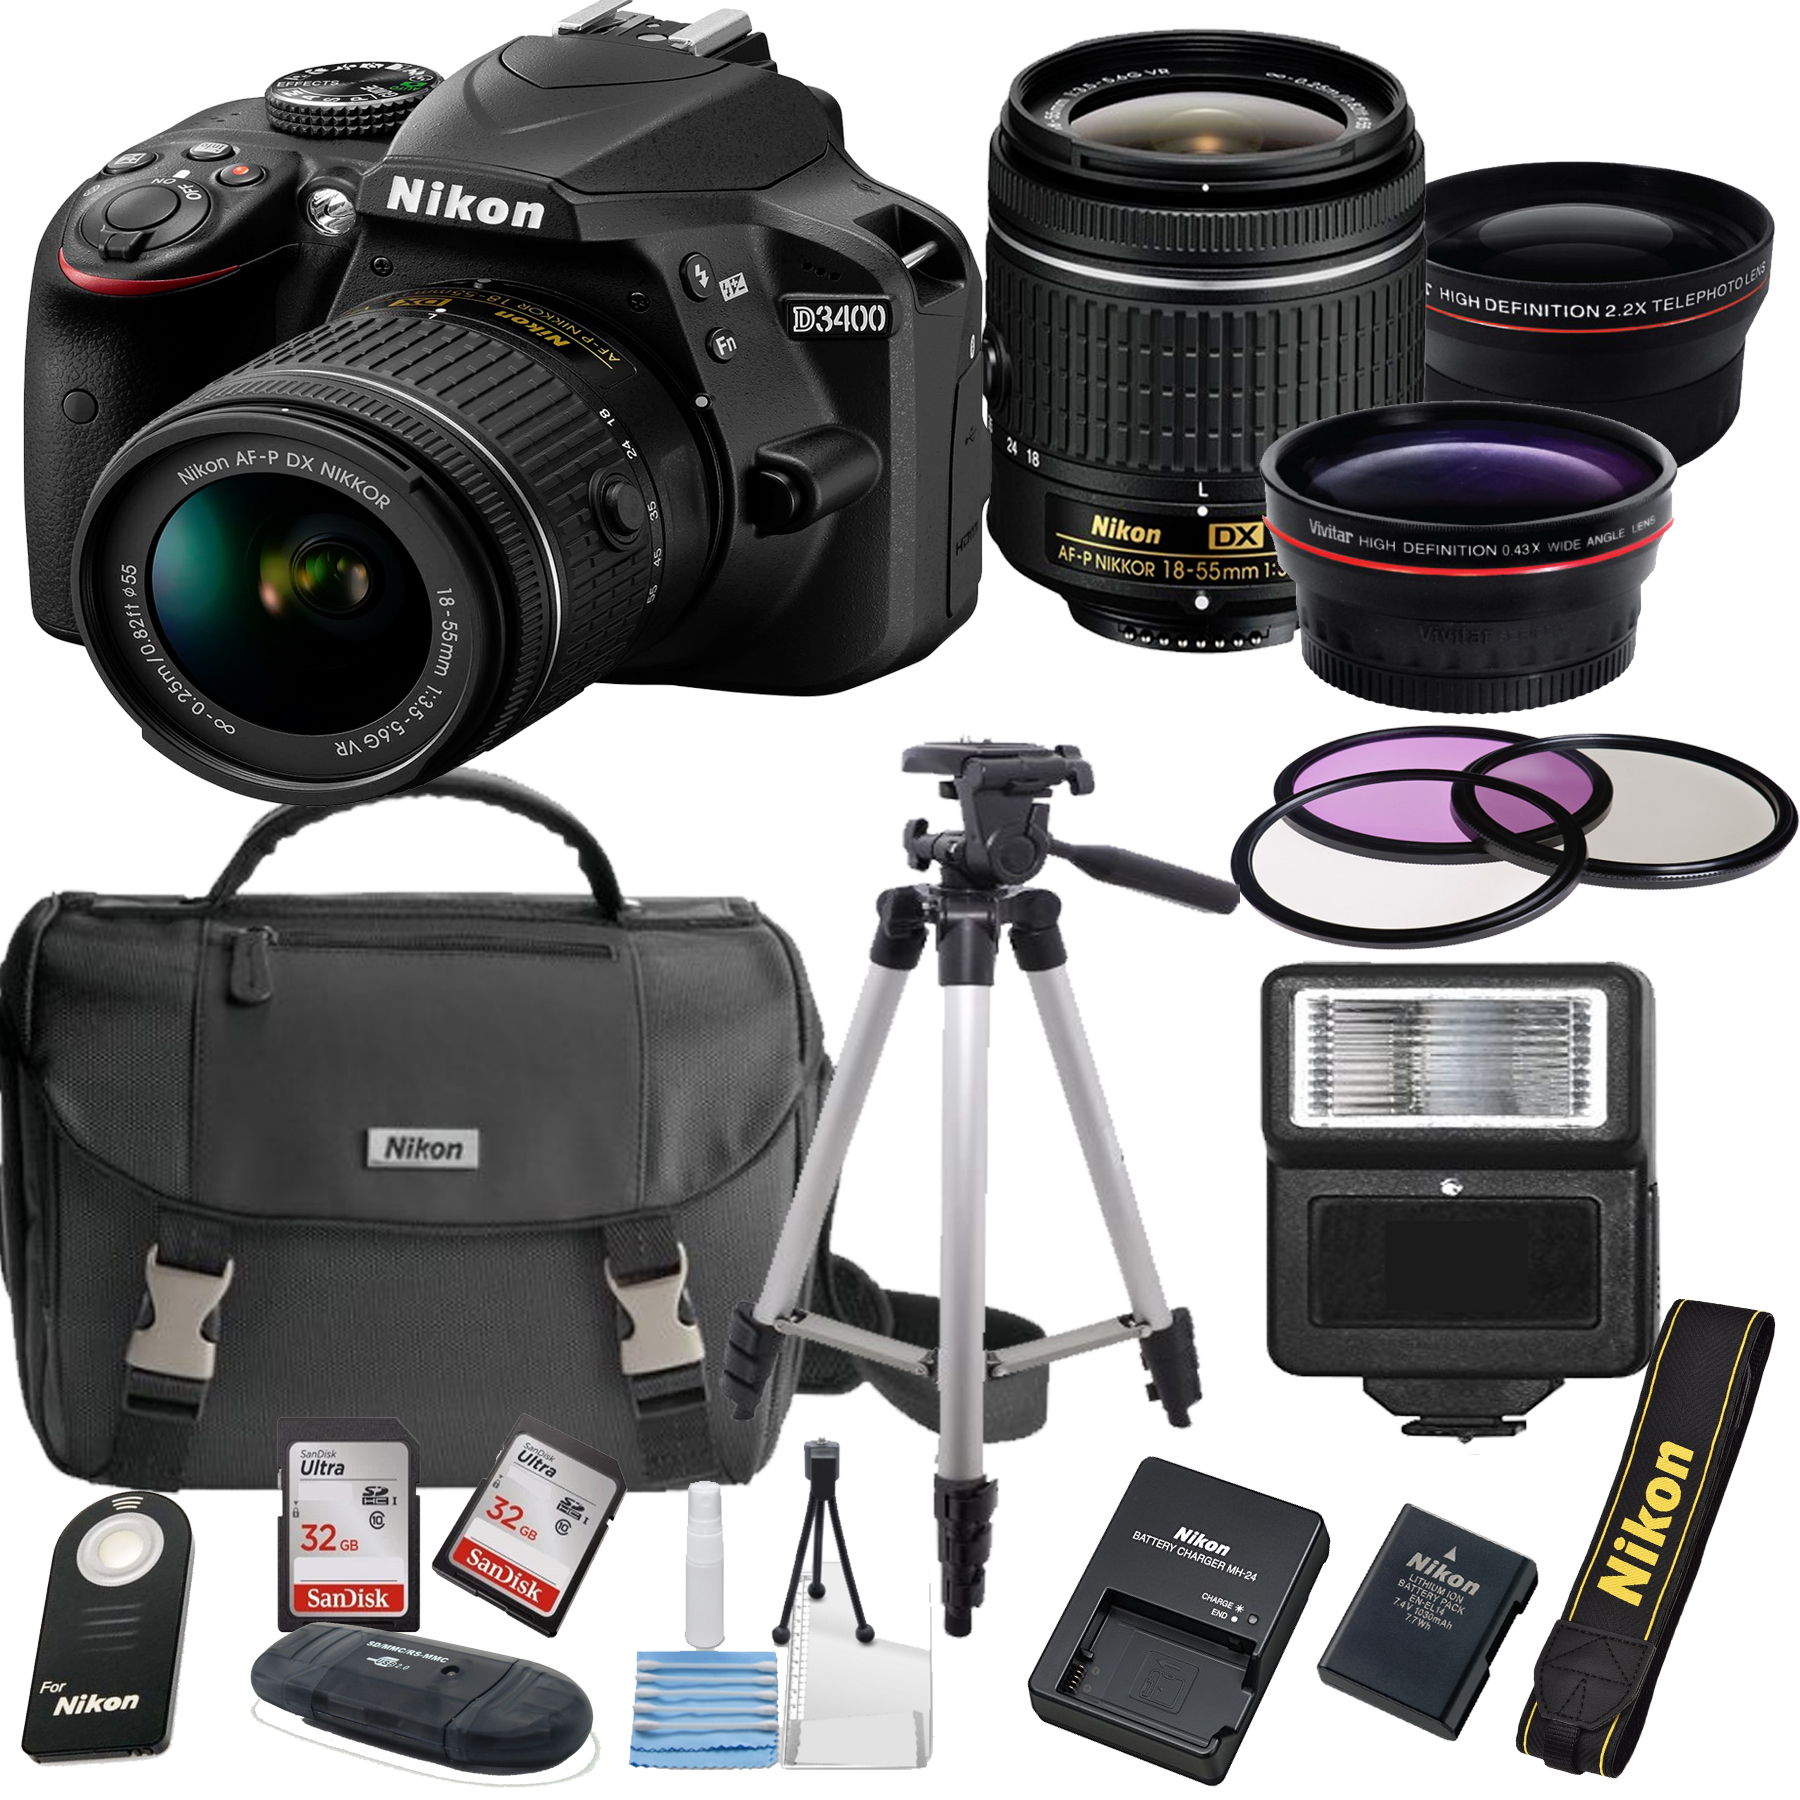 Nikon D3400 24.2 MP DSLR Camera + 18-55mm VR Lens Kit + Accessory Bundle + 2X 32GB Memory + Nikon Camera Bag + Wide Angle Lens + 2x Telephoto Lens + Flash + Remote + Tripod + Filters  + More